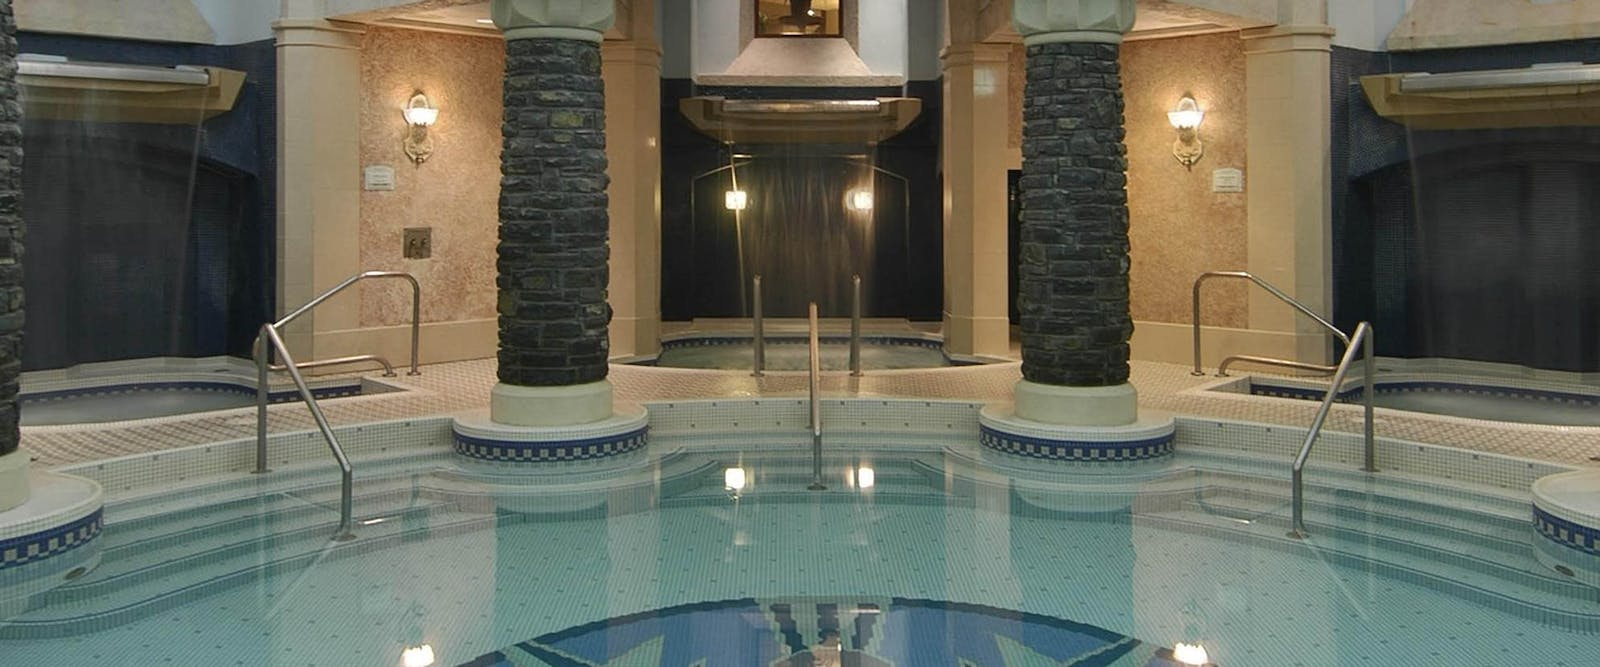 Spa Pool at Fairmont Banff Springs, Alberta